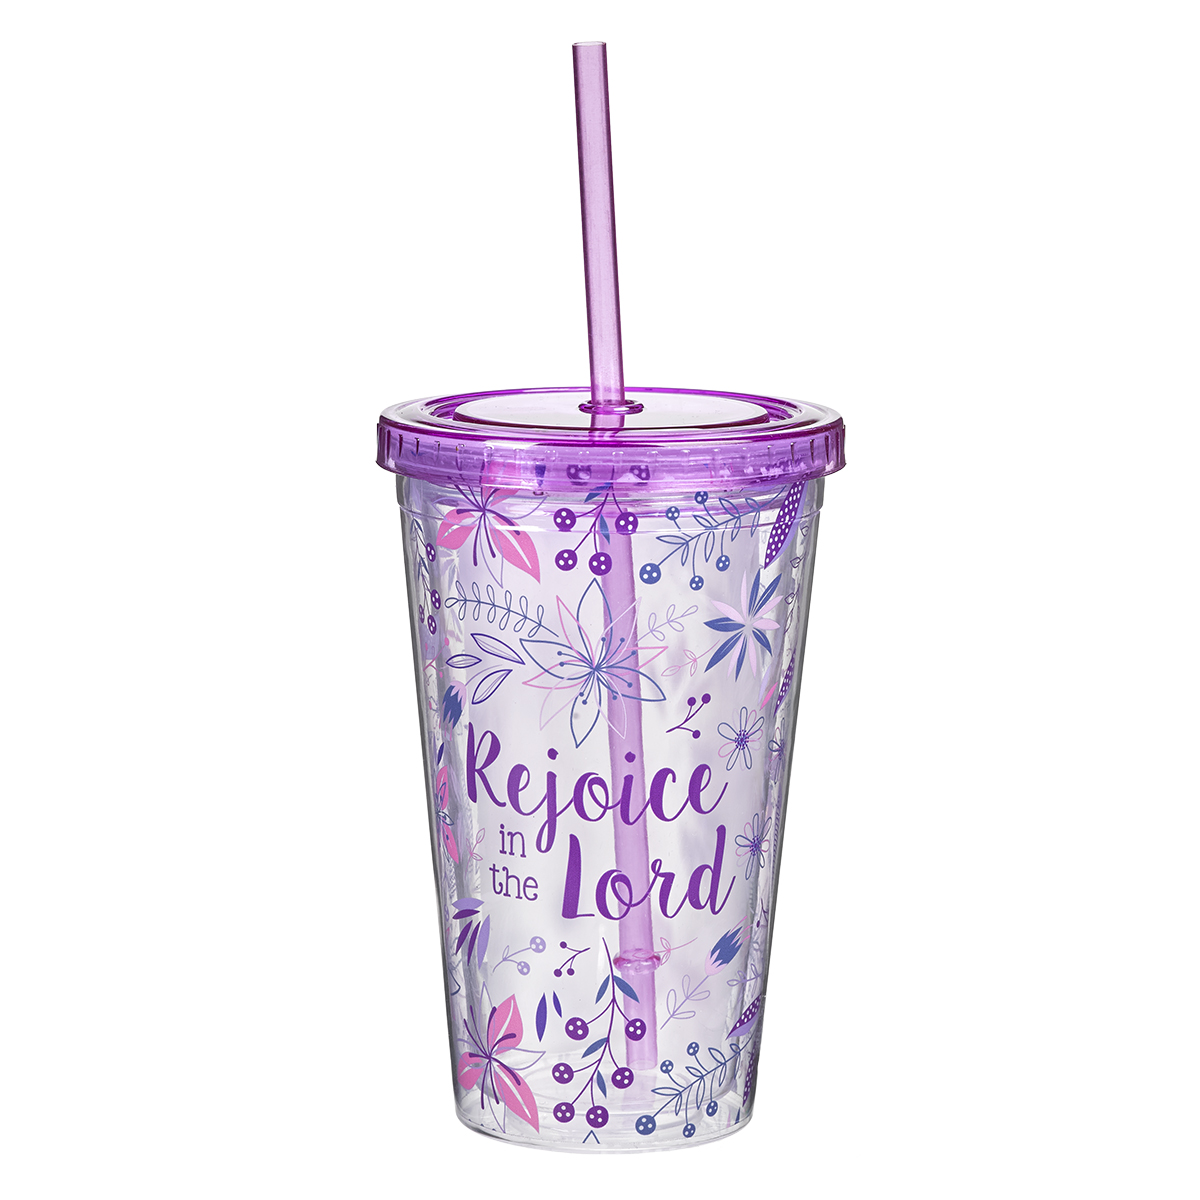 12 Ounce With God All Things Are Possible Matthew 19:26 Double Wall Tumbler